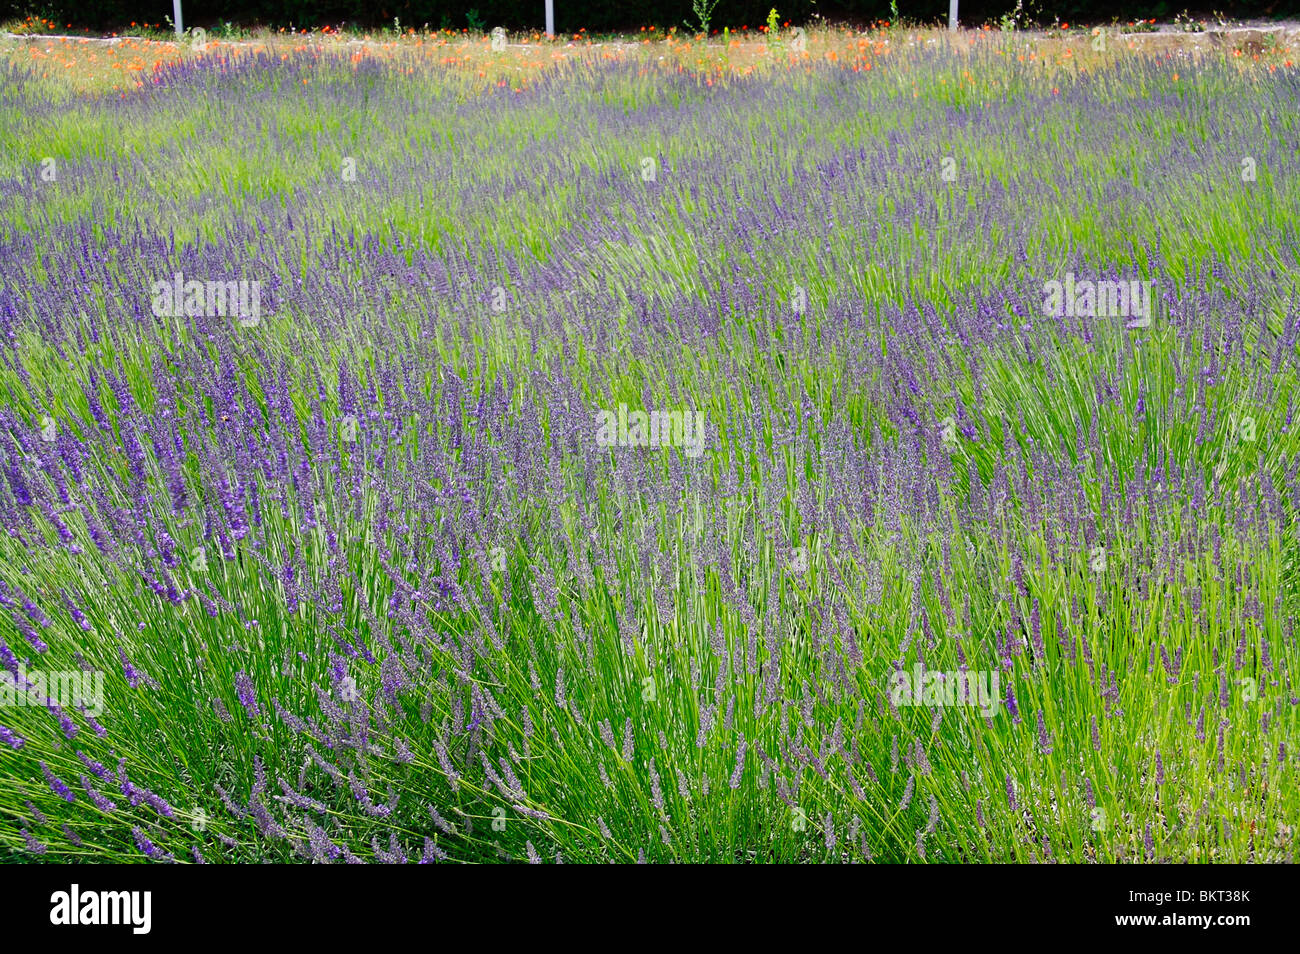 Lavender field with poppy's in background Provence, France. - Stock Image